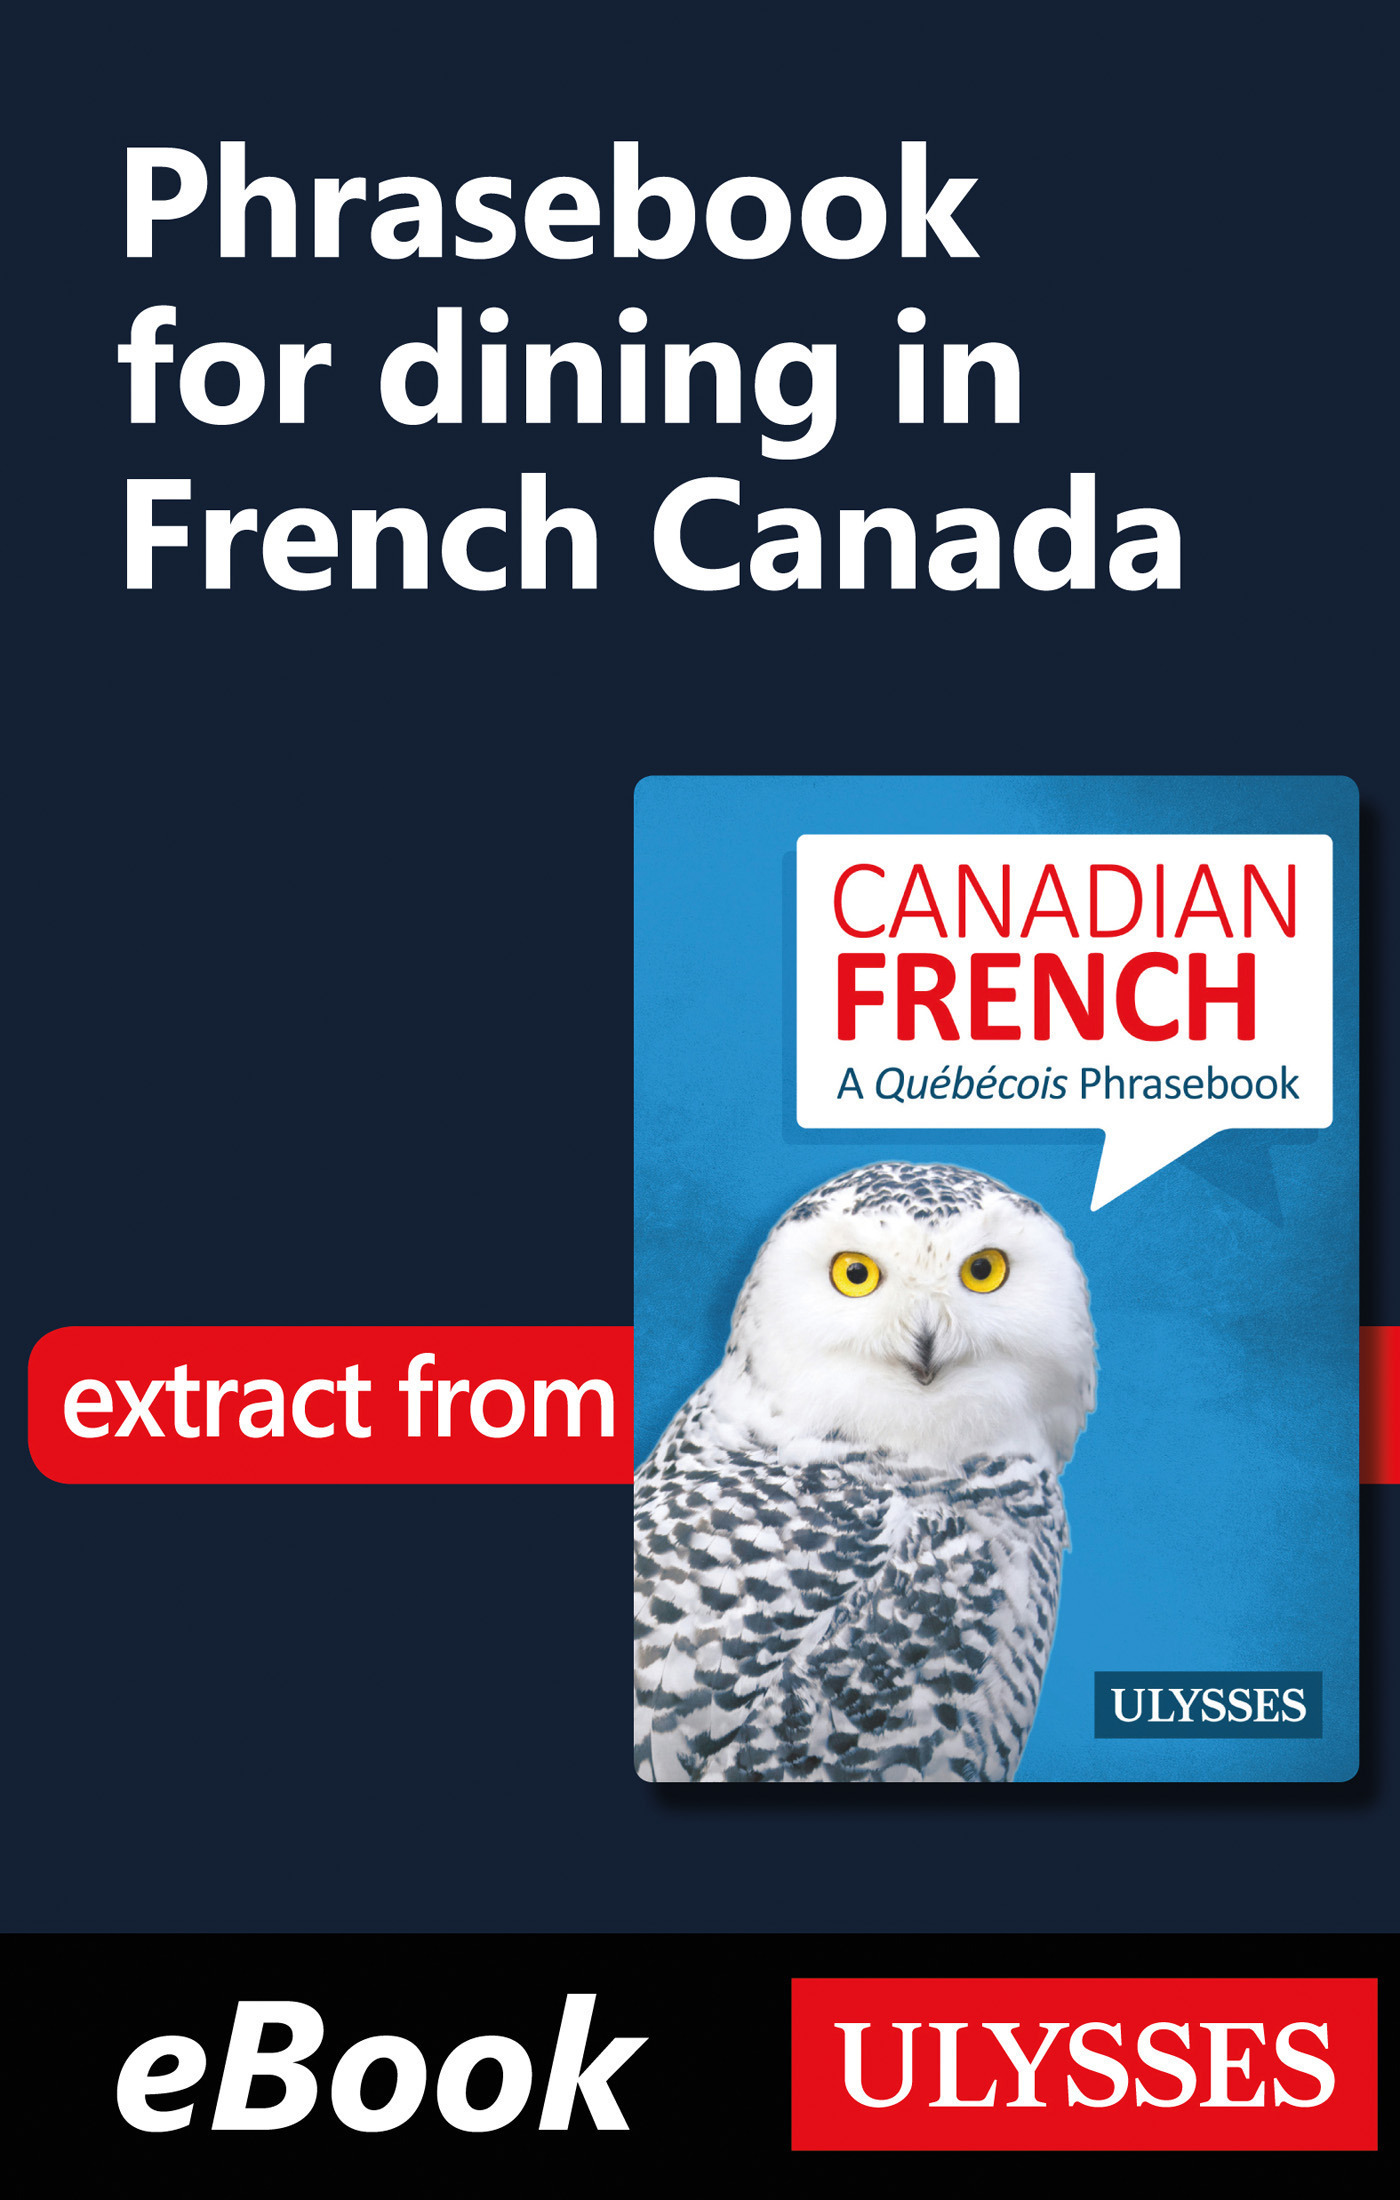 Phrasebook for dining in French Canada (ebook)